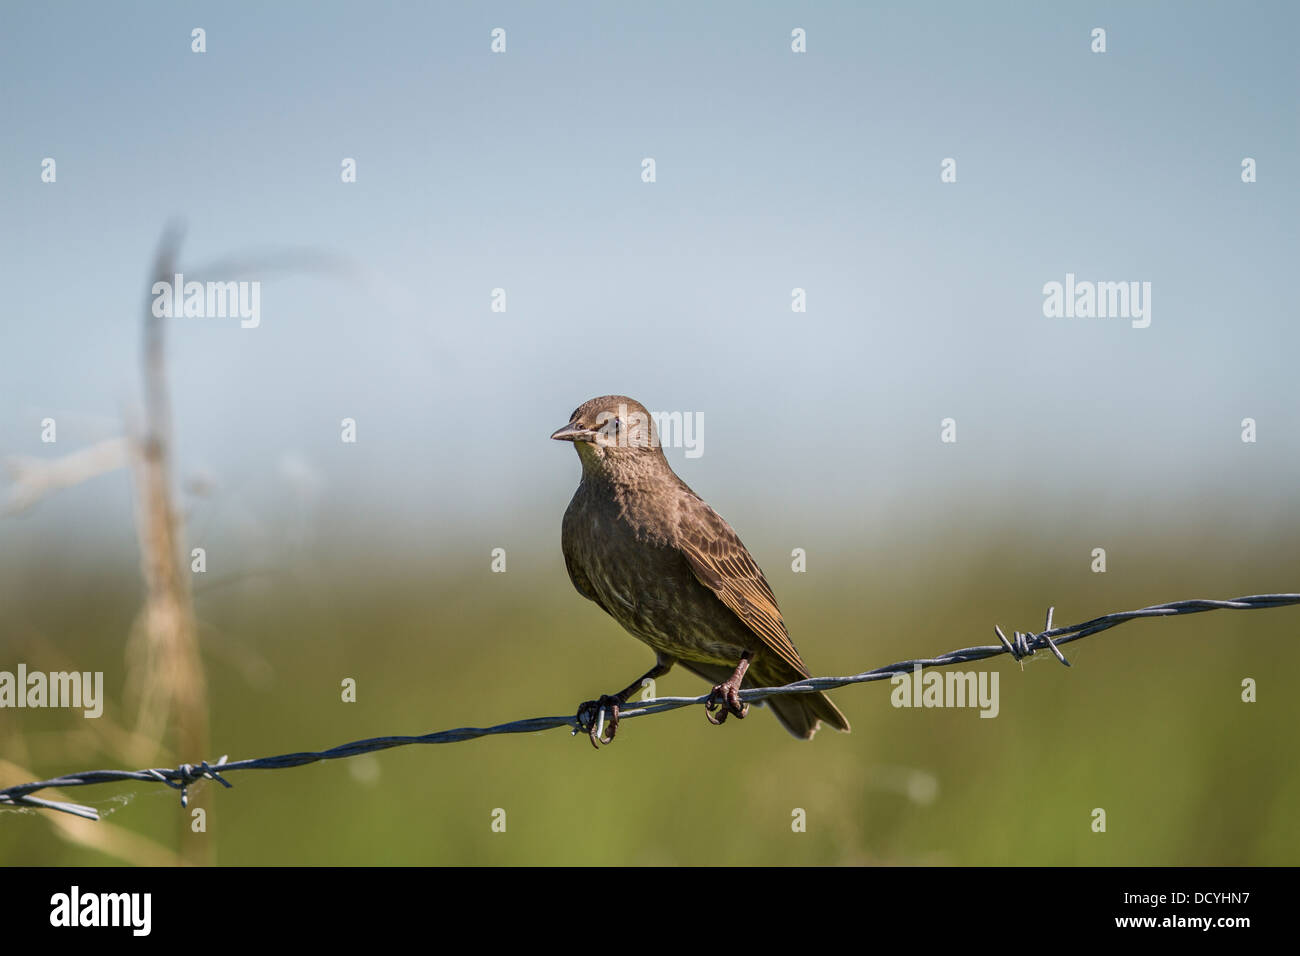 Juvenile European Starling (Sturnus vulgaris) Sitting on barbed wire fence. Rural Alberta, Canada Stock Photo